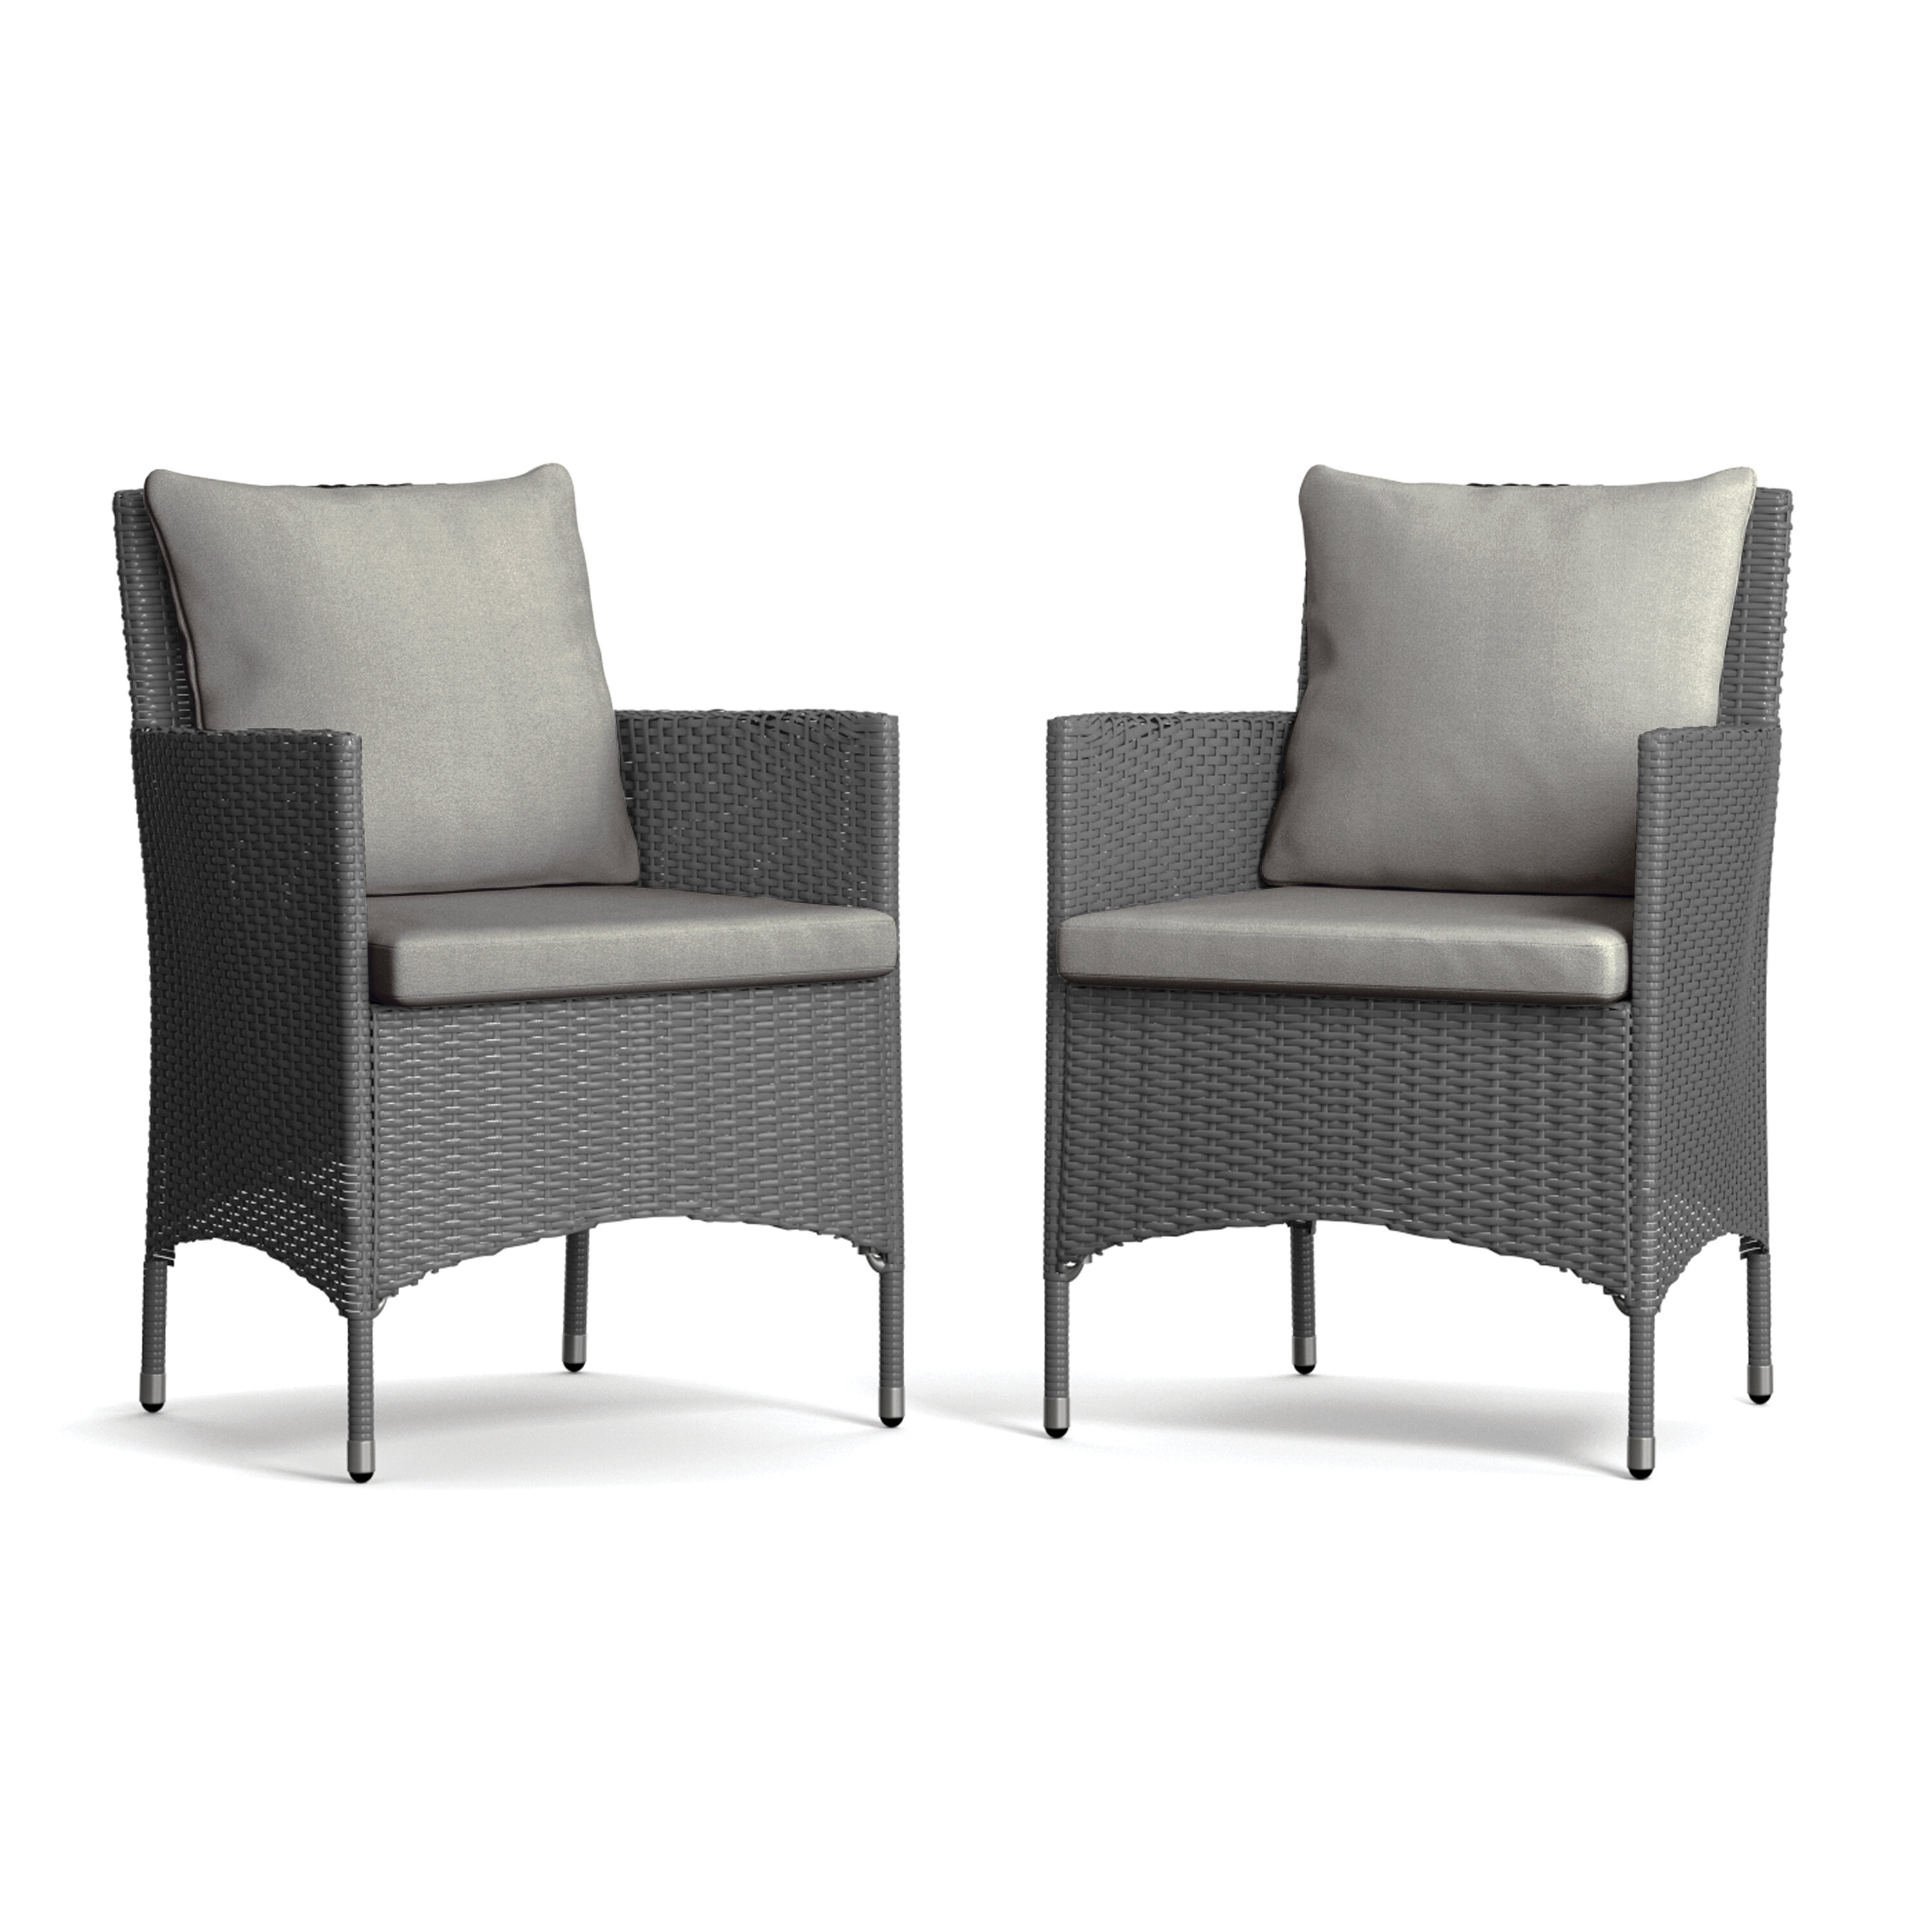 Remarkable Ellie Patio Dining Chair With Cushion Alphanode Cool Chair Designs And Ideas Alphanodeonline